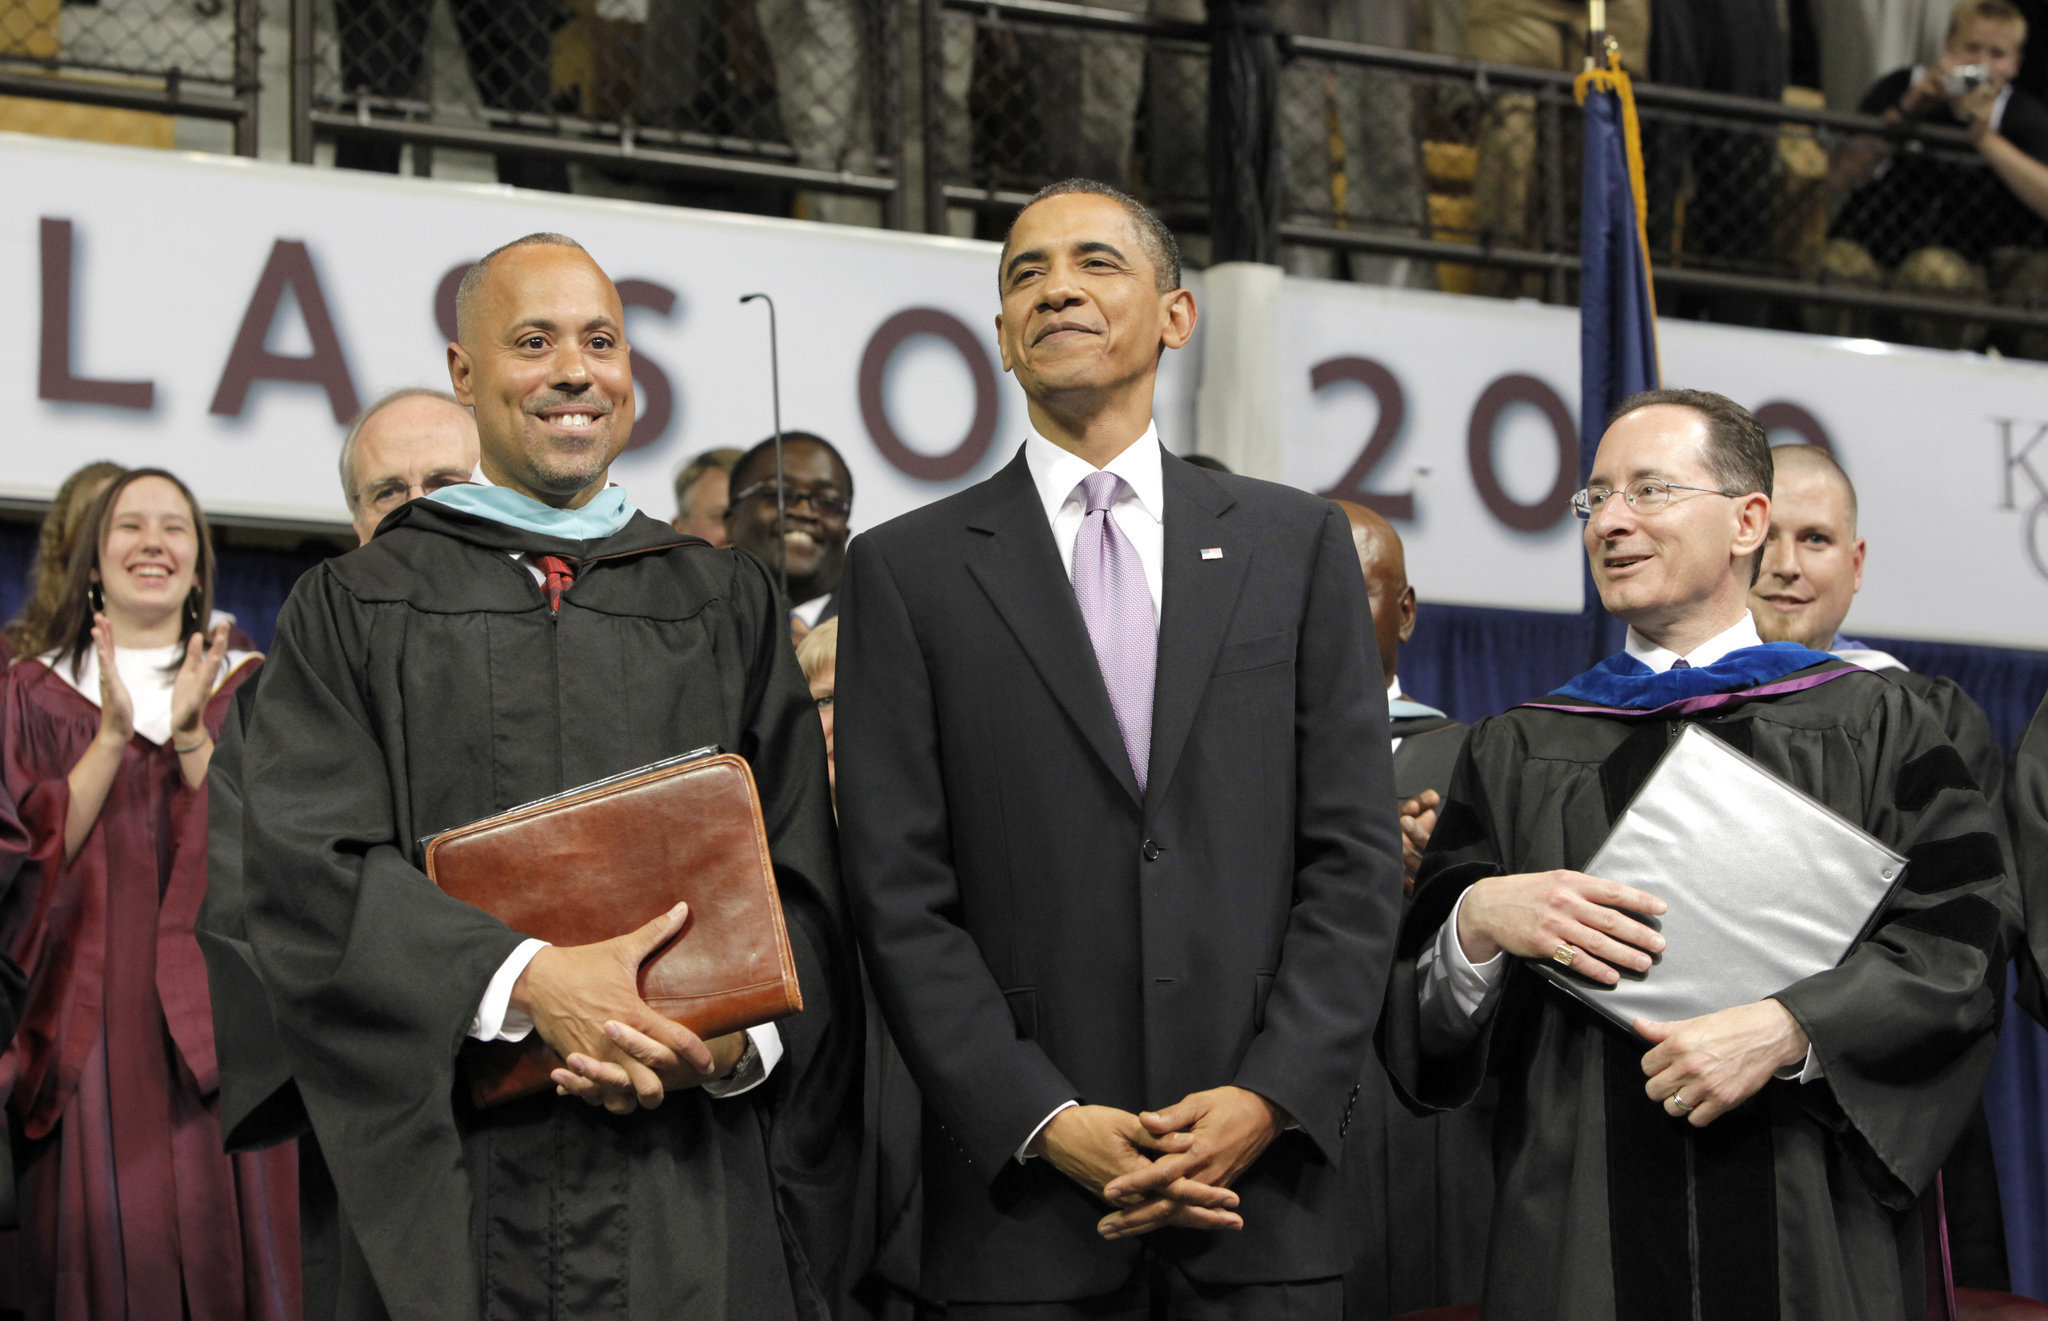 President Obama speaks at Kalamazoo Central's Commencement in 2010